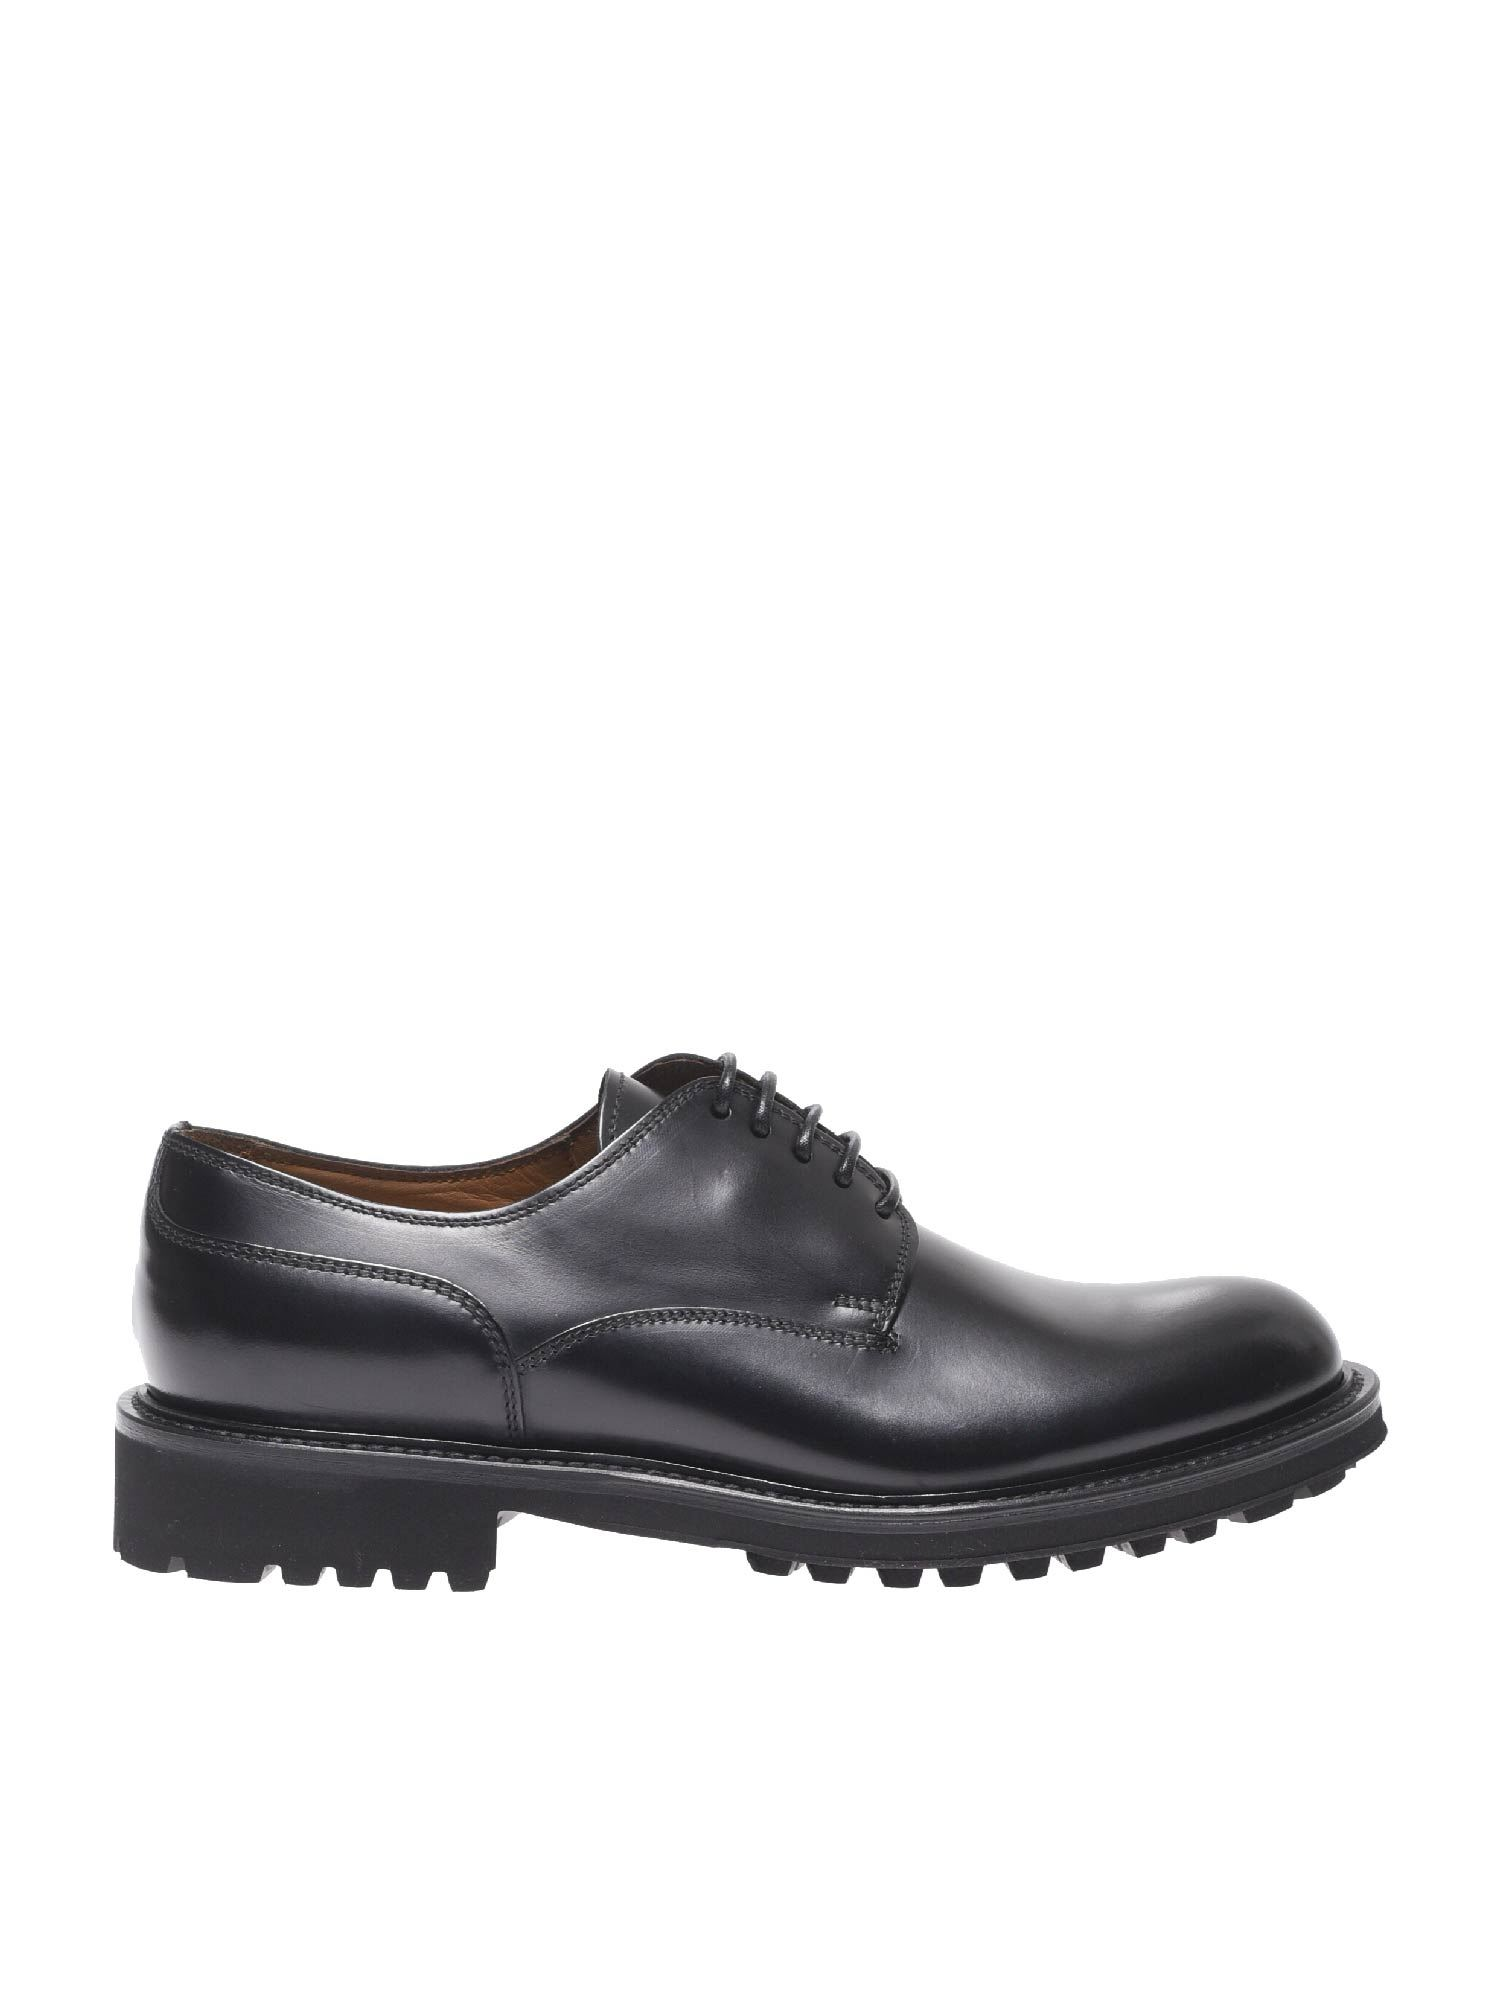 Doucal's Black Oxford Shoes With Lug Sole